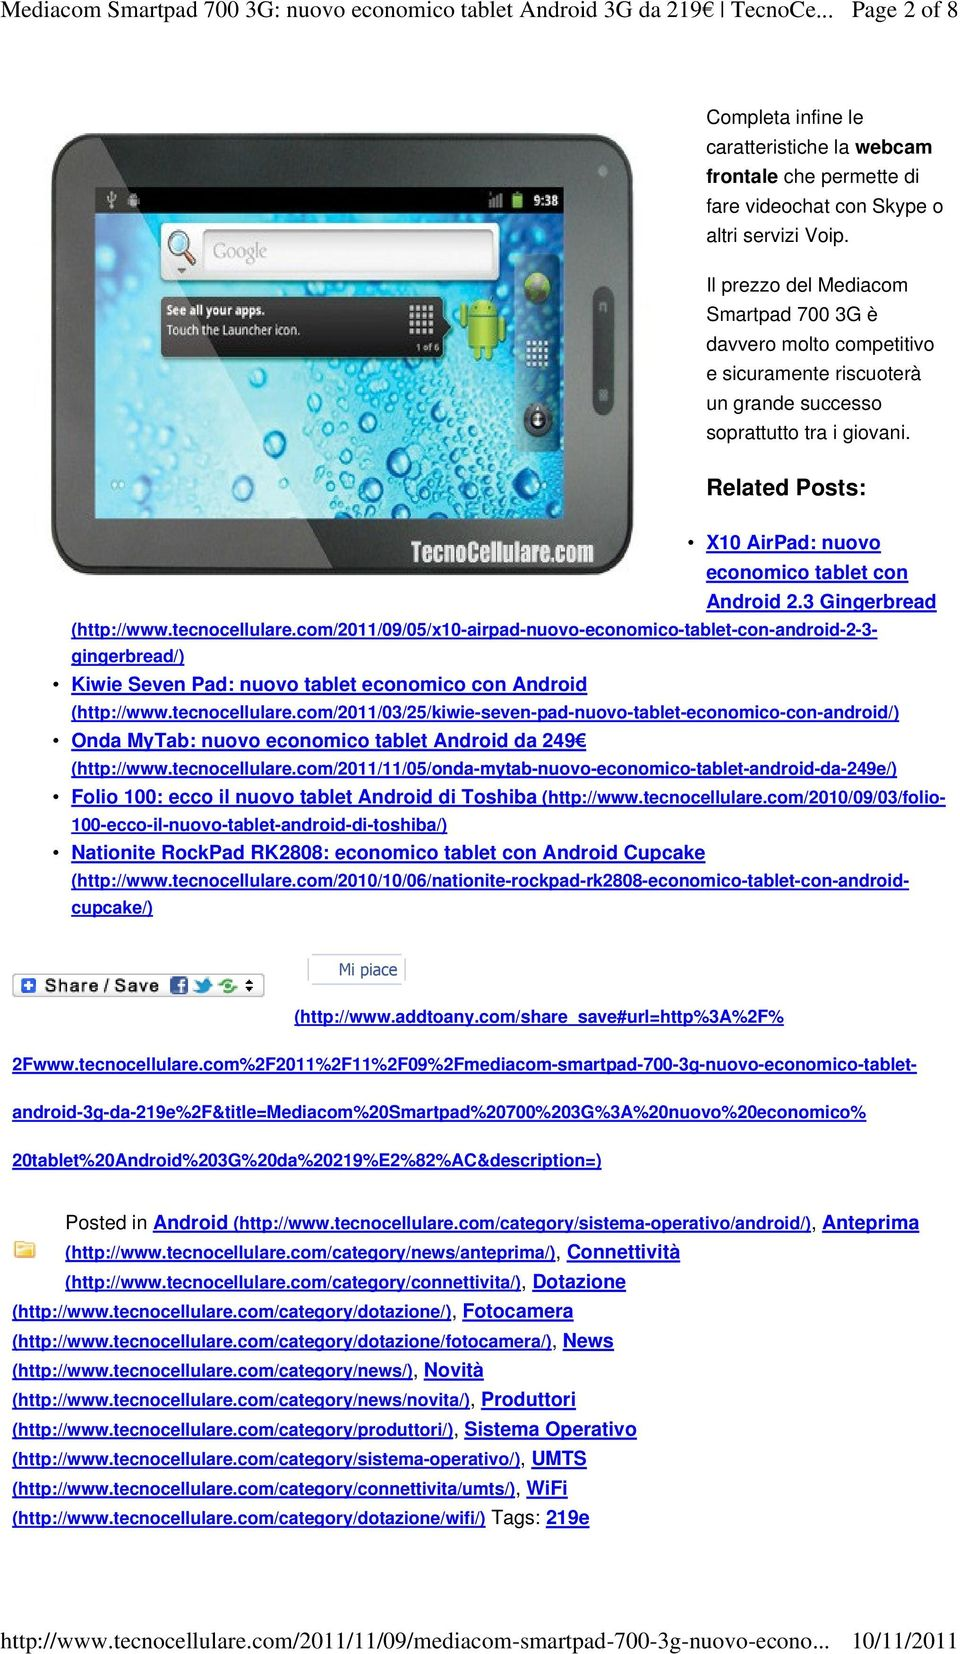 Related Posts: X10 AirPad: nuovo economico tablet con Android 2.3 Gingerbread (http://www.tecnocellulare.